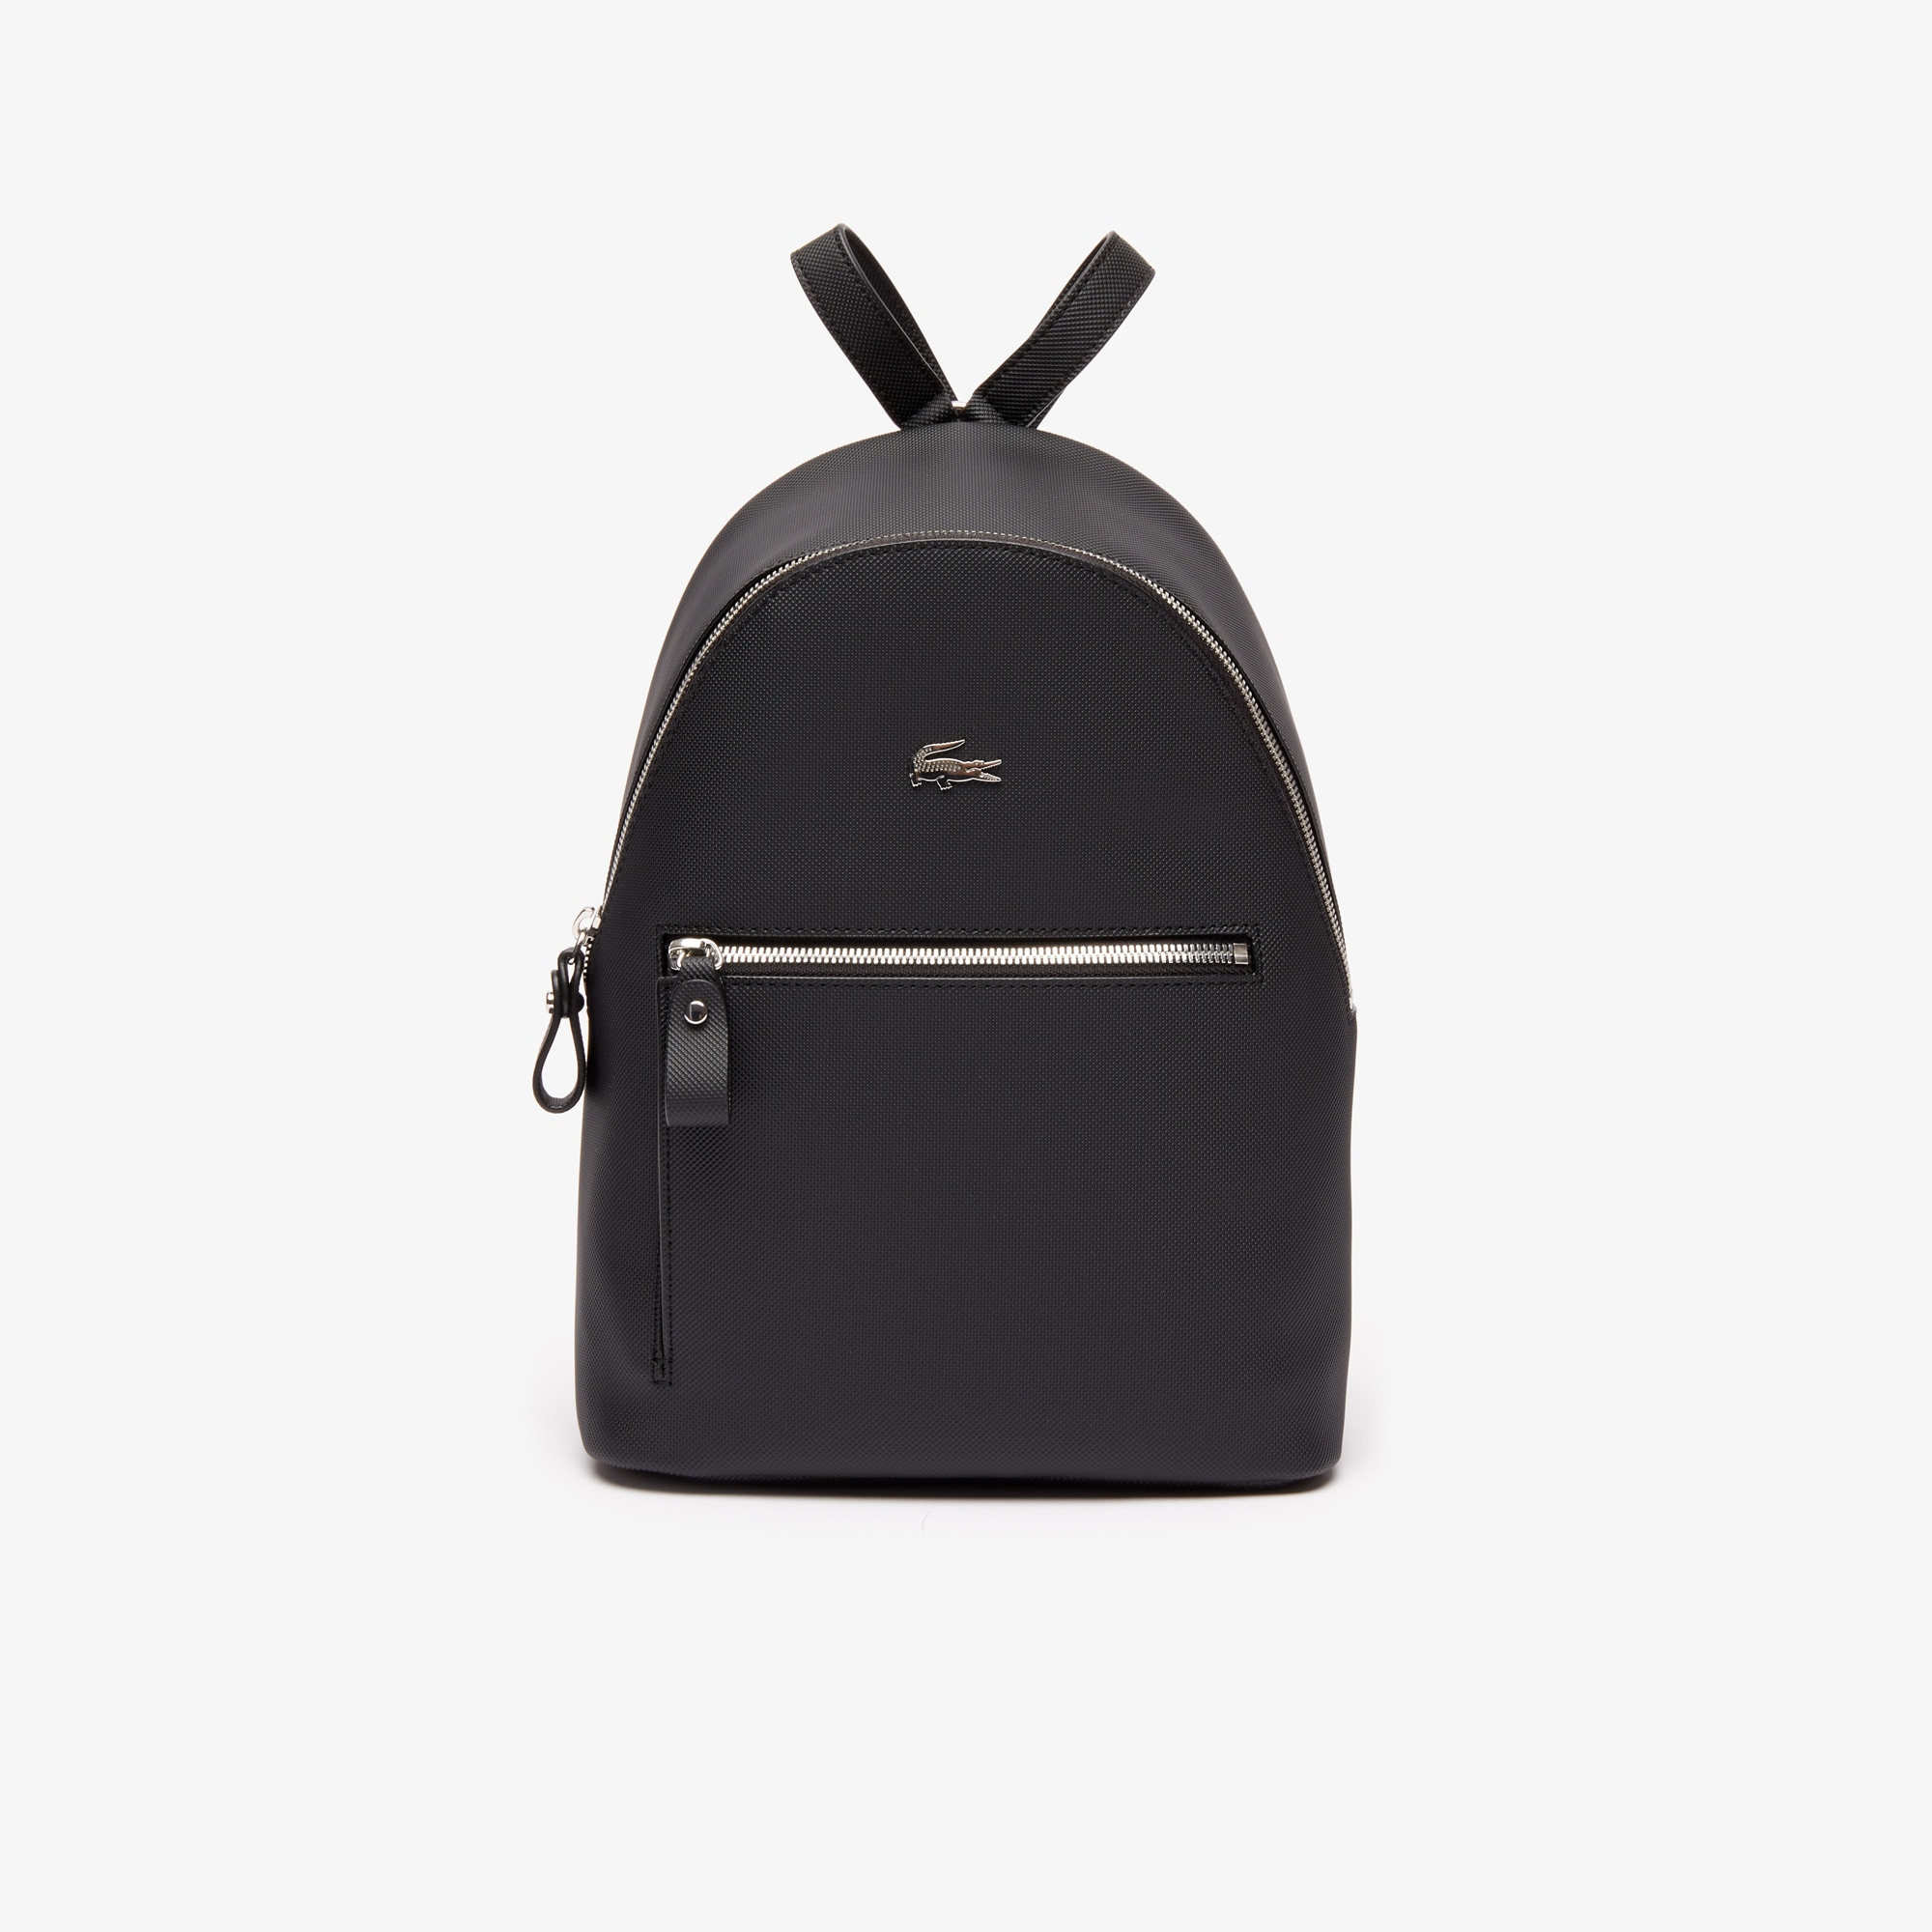 8b1b6a6f6a Women's Daily Classic Coated Piqué Canvas Backpack | LACOSTE